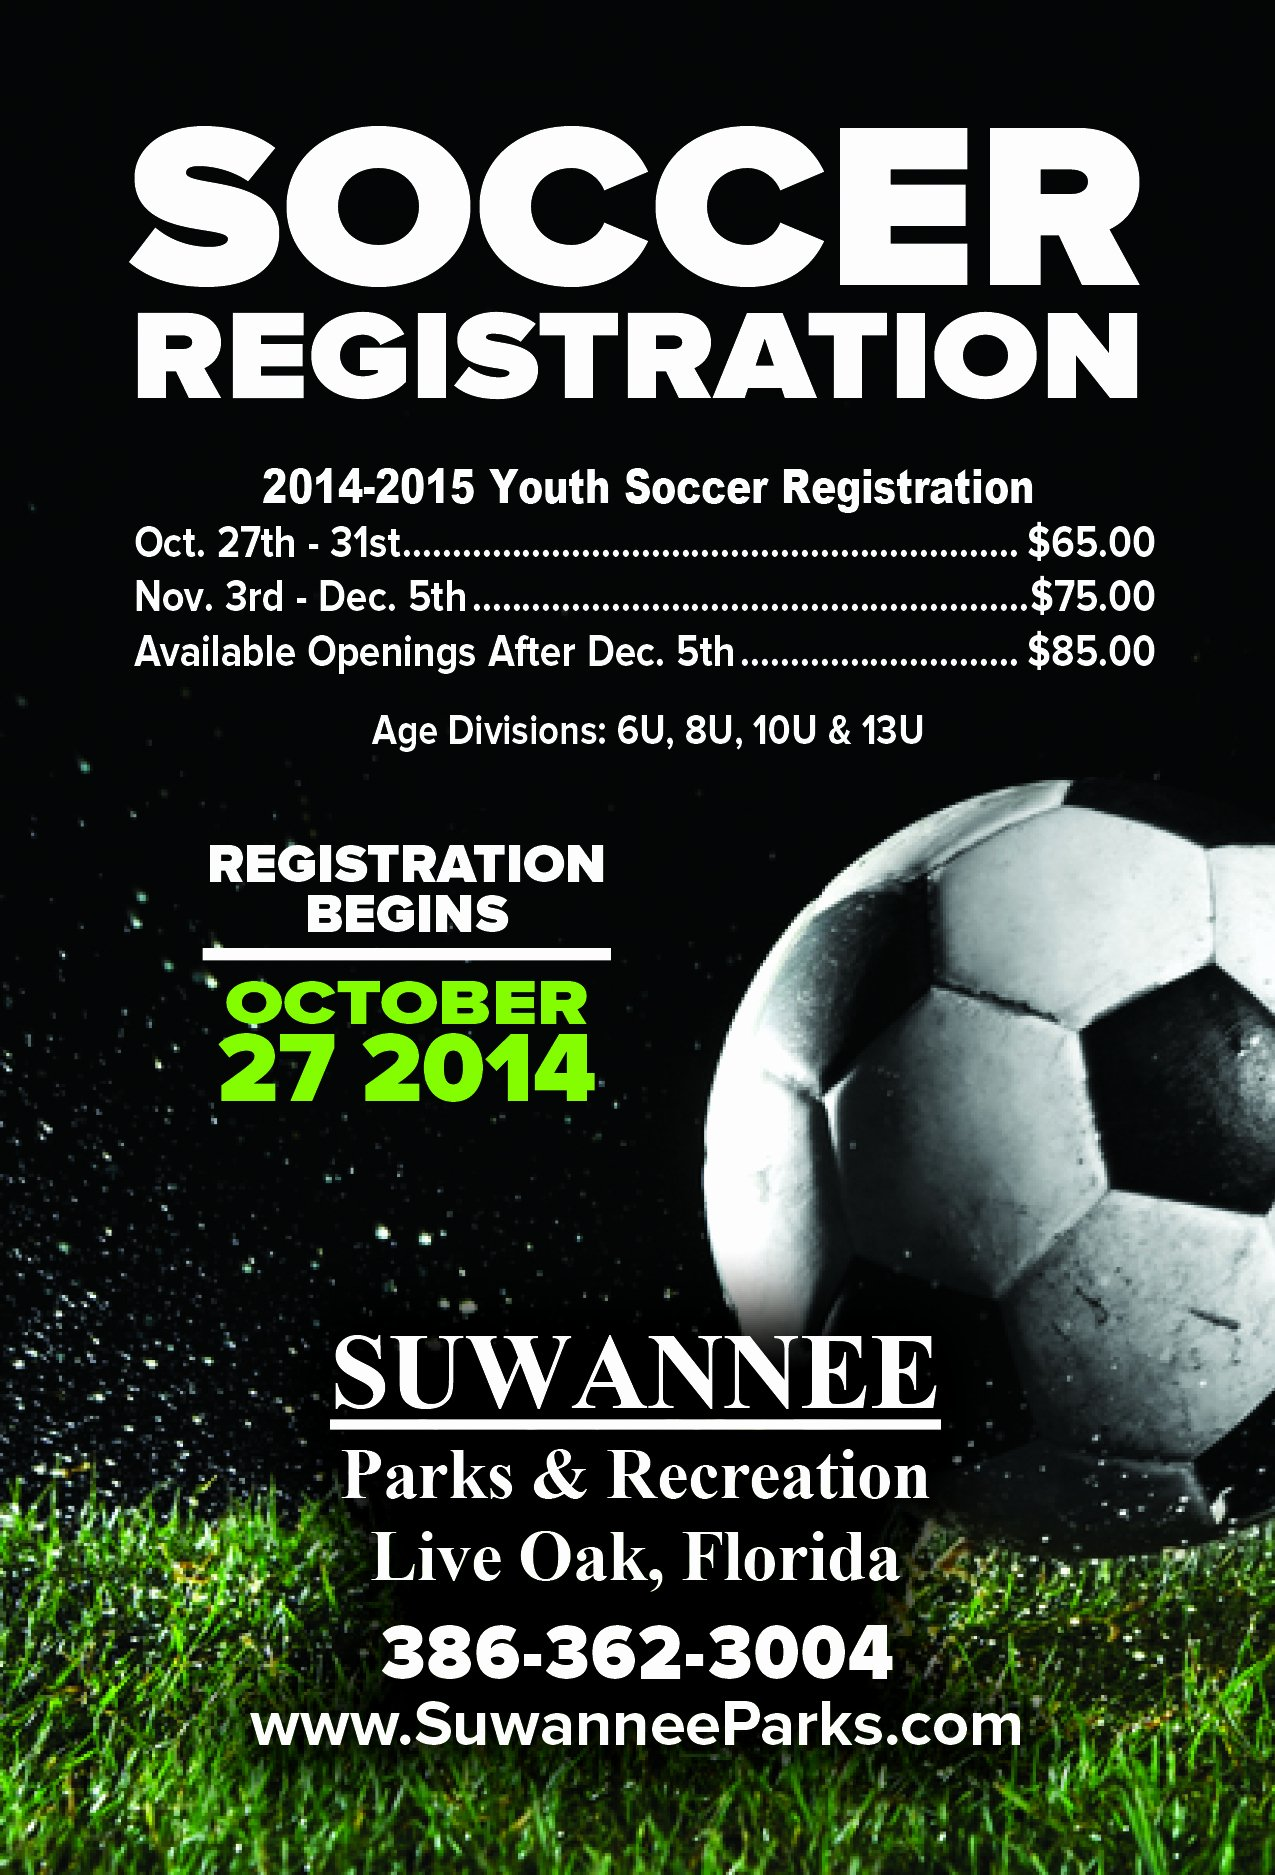 Soccer Flyer Template Free Awesome Suwannee Parks and Recreation